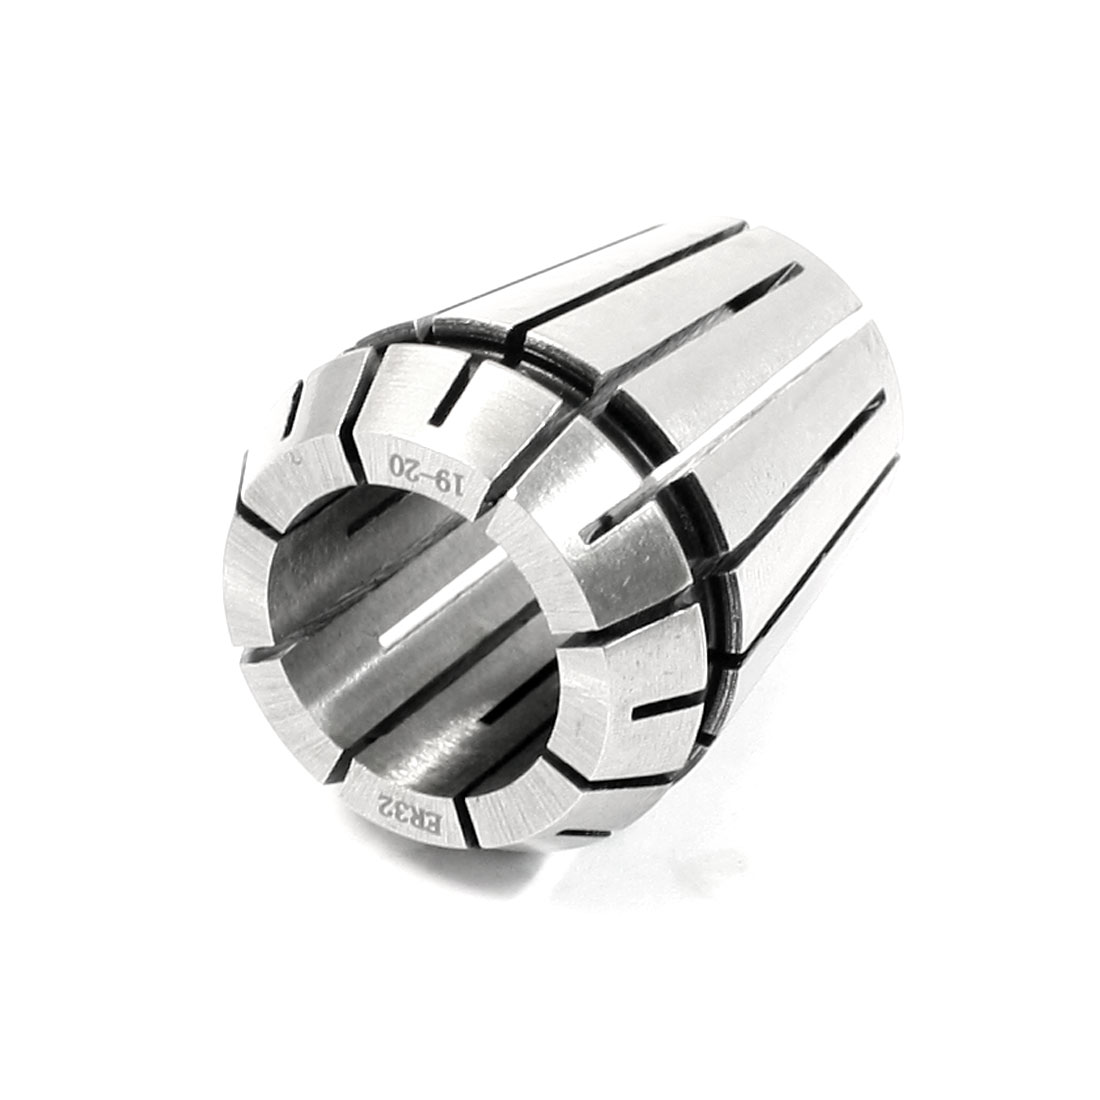 Clamping-Range-20-19mm-Stainless-Steel-ER32-Precision-Spring-Collet-Silver-Tone